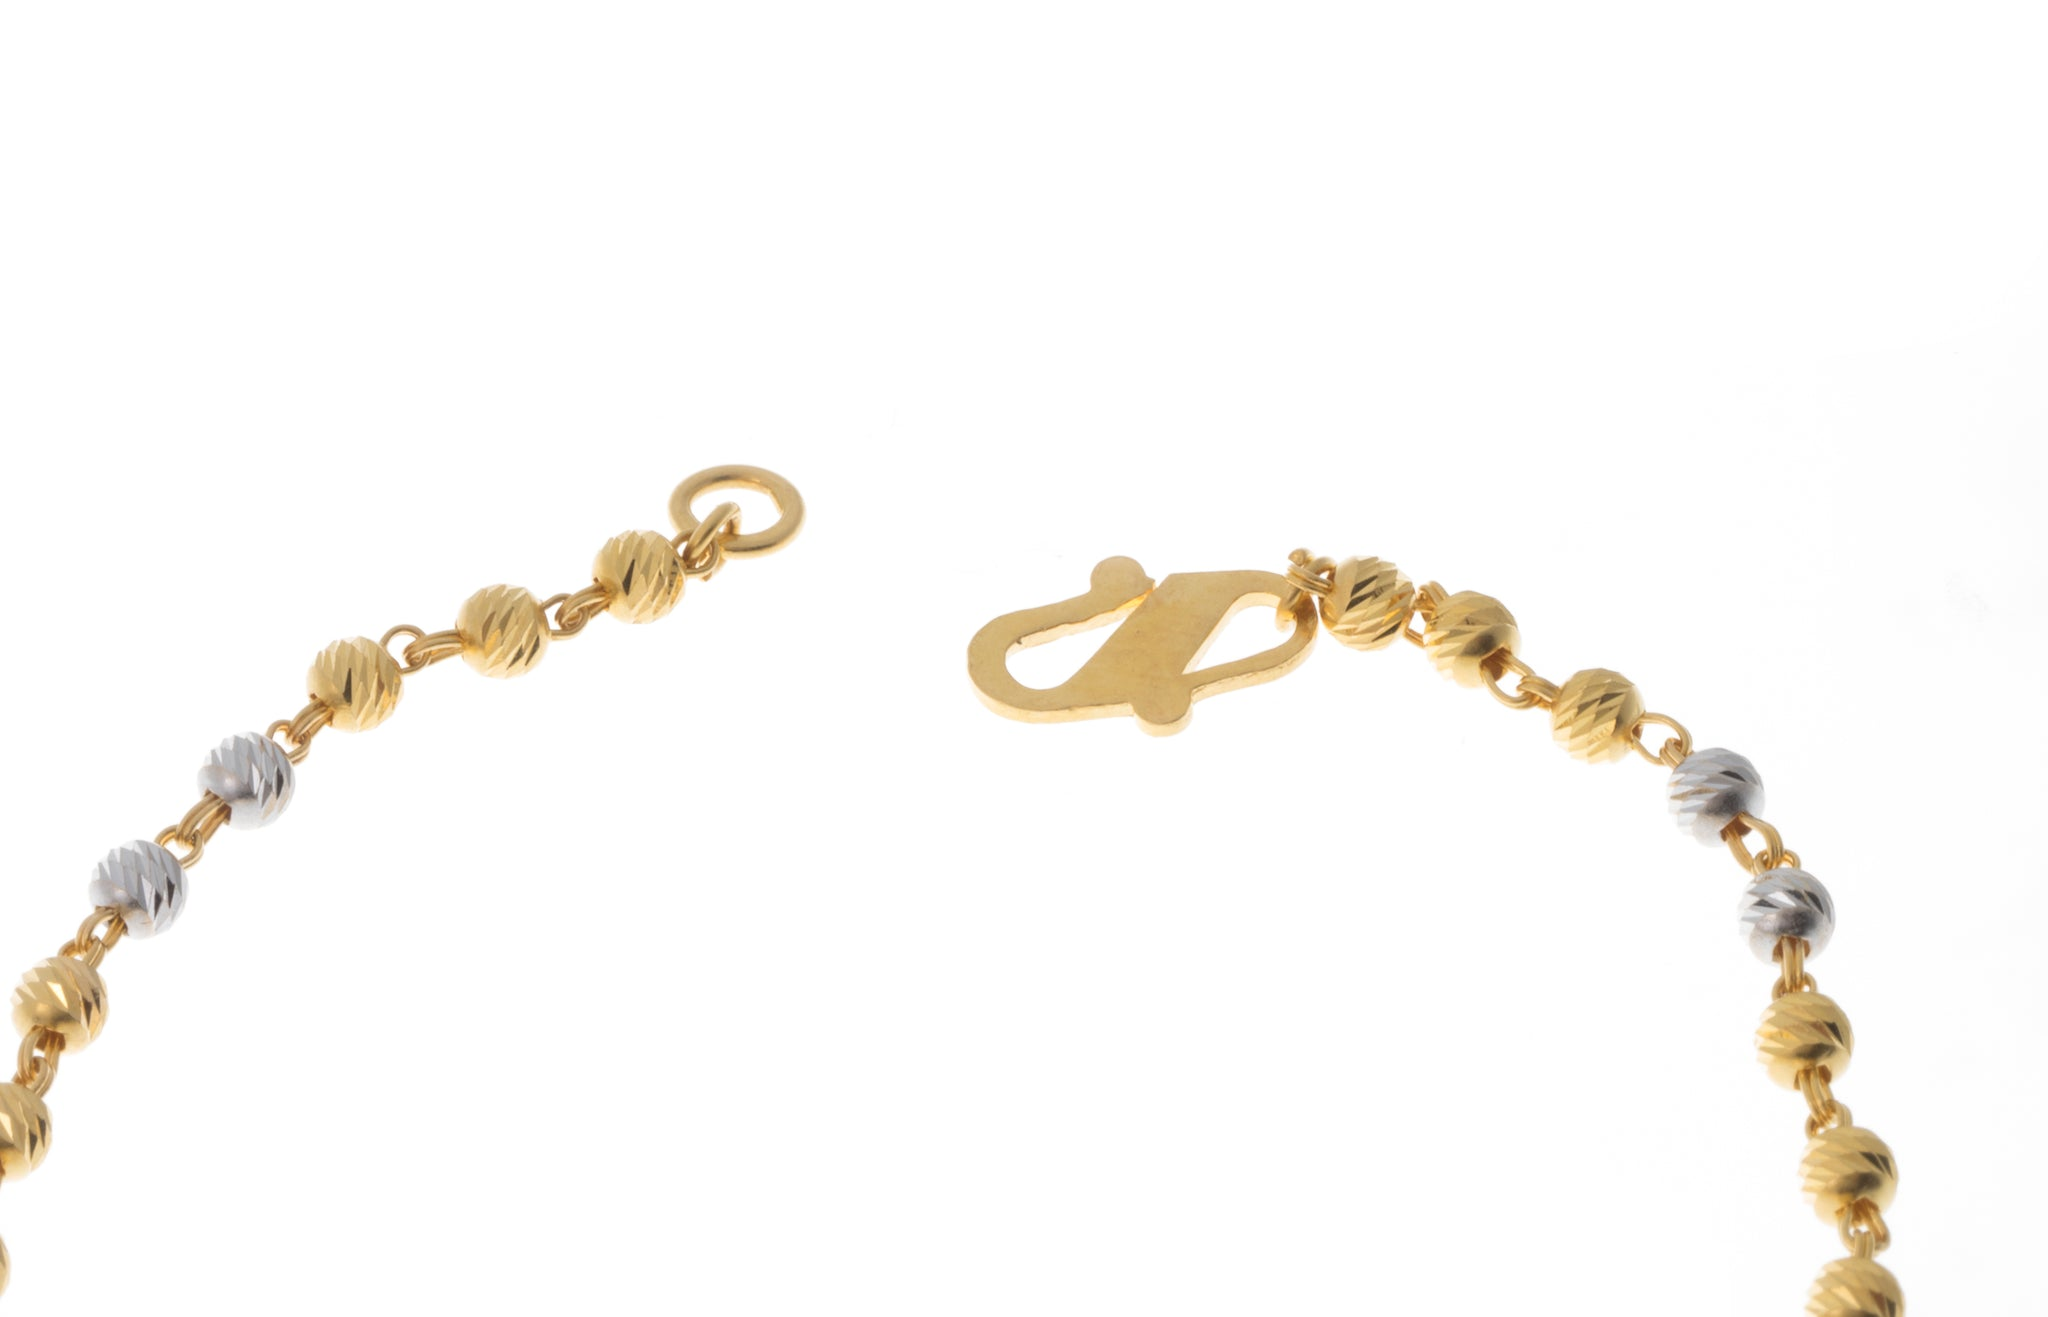 22ct Gold Bracelet with Diamond Cut and Rhodium Design (4.7g) LBR-7397